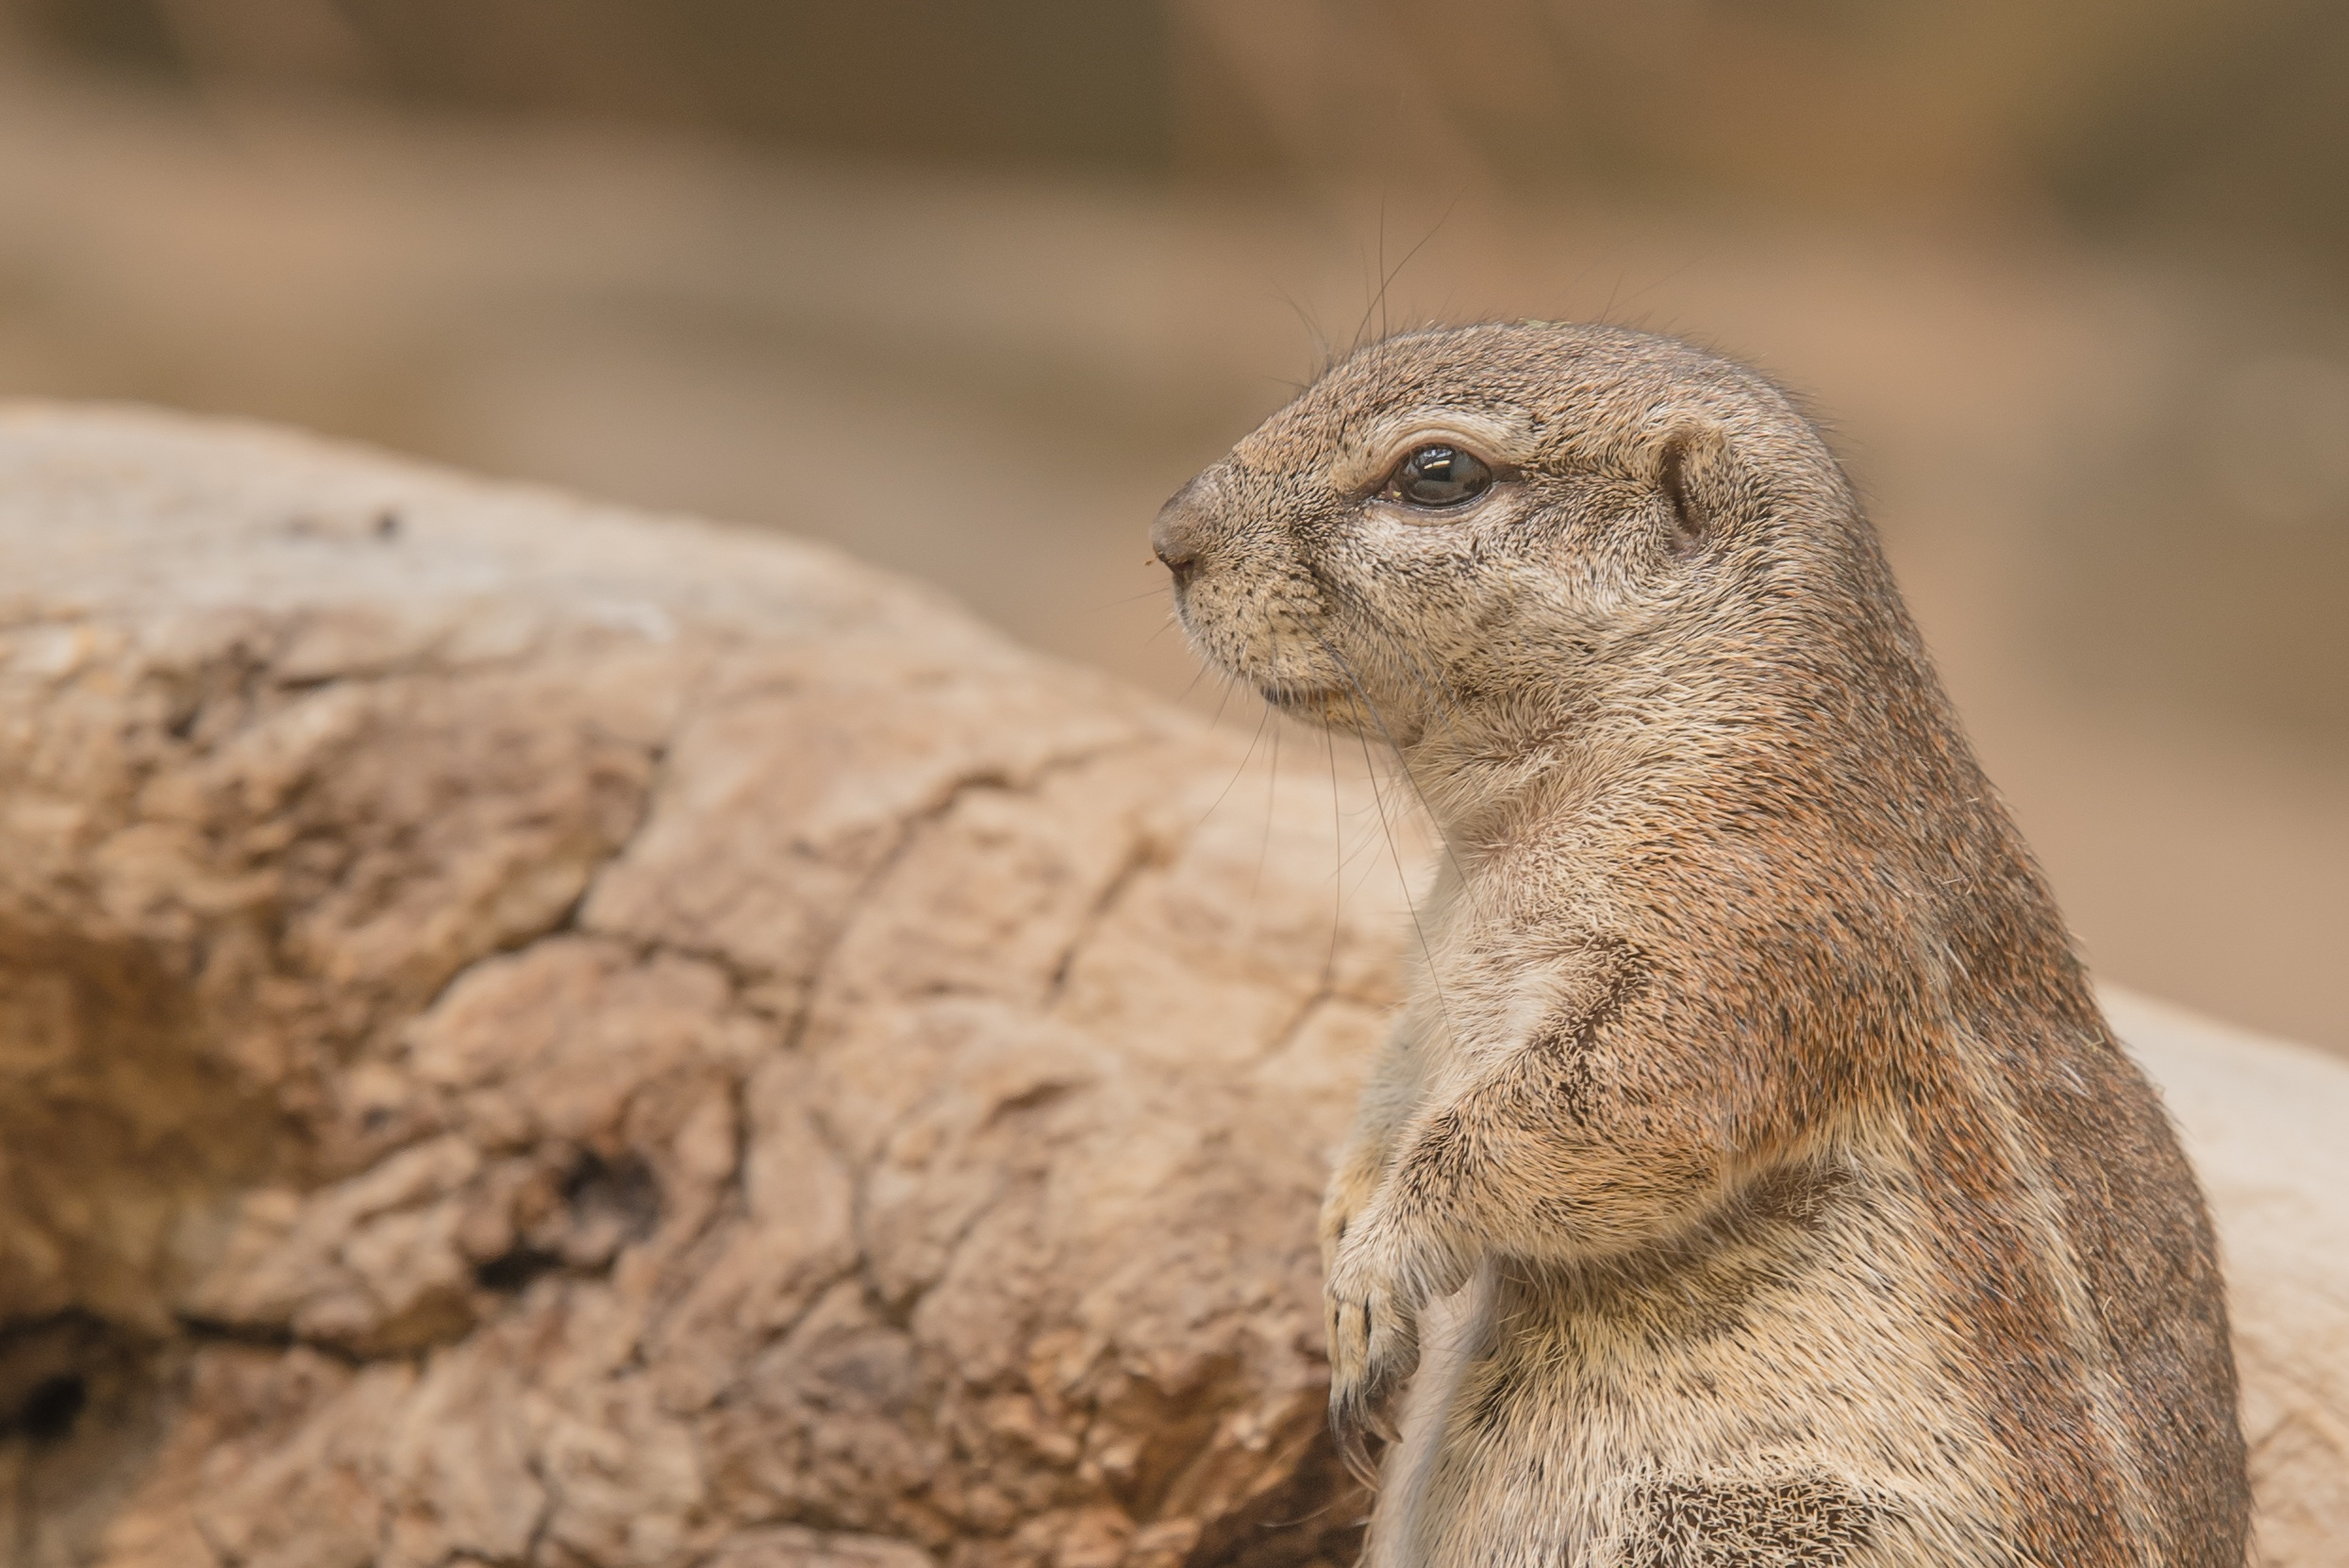 78953 download wallpaper Animals, Prairie Dog, Meadow Dog, Rodent, Muzzle screensavers and pictures for free